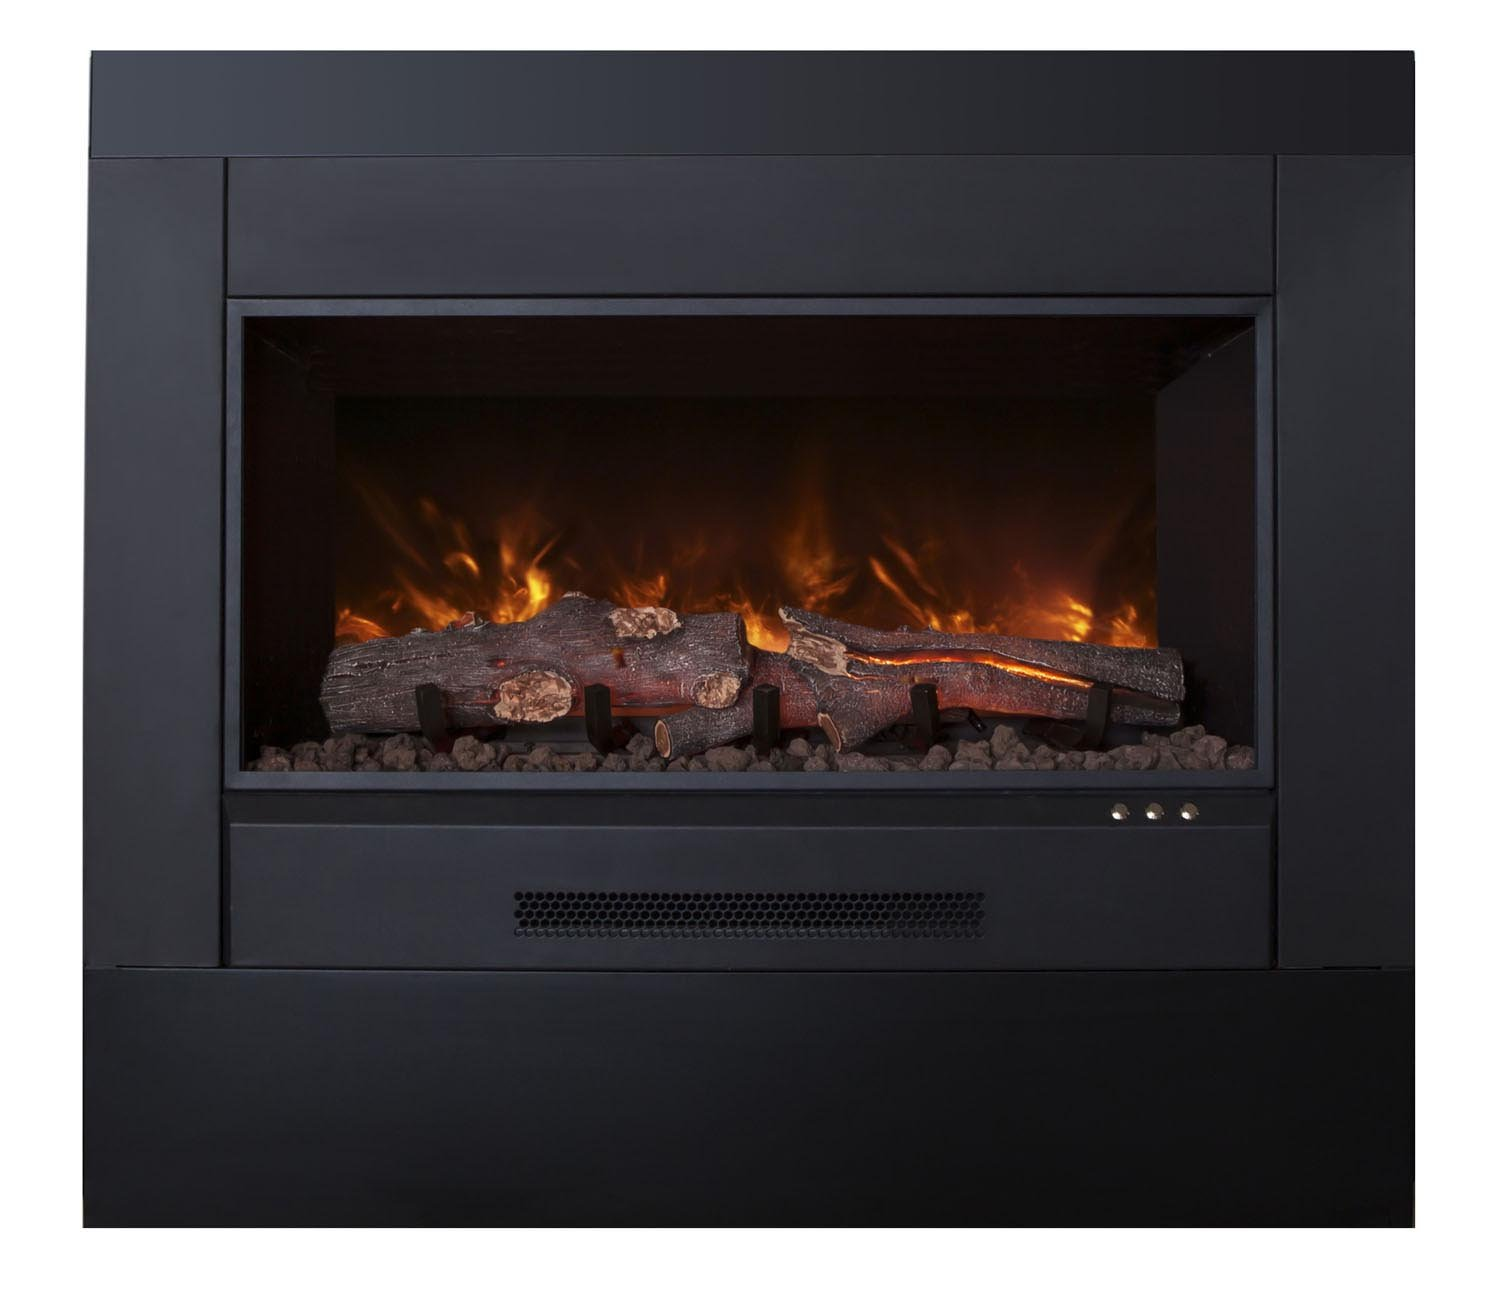 Wayfair Len amazon com modern flames zcr series electric fireplace insert